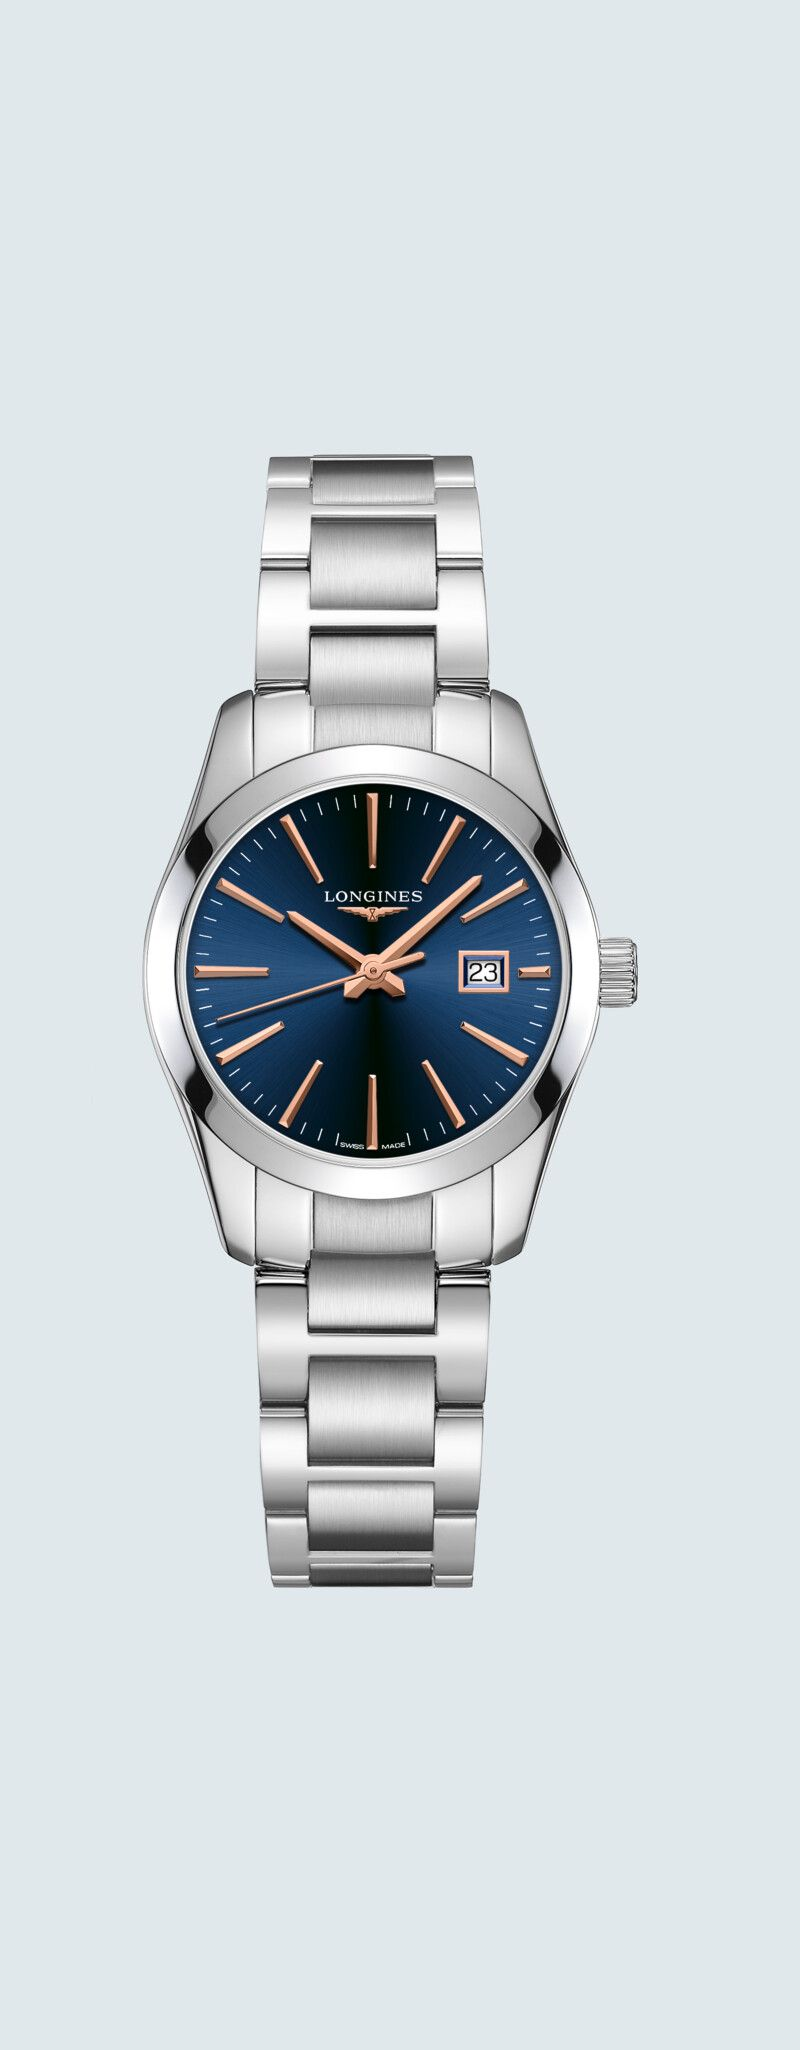 29.50 mm Stainless steel case with Blue dial and Stainless steel strap - case zoom view